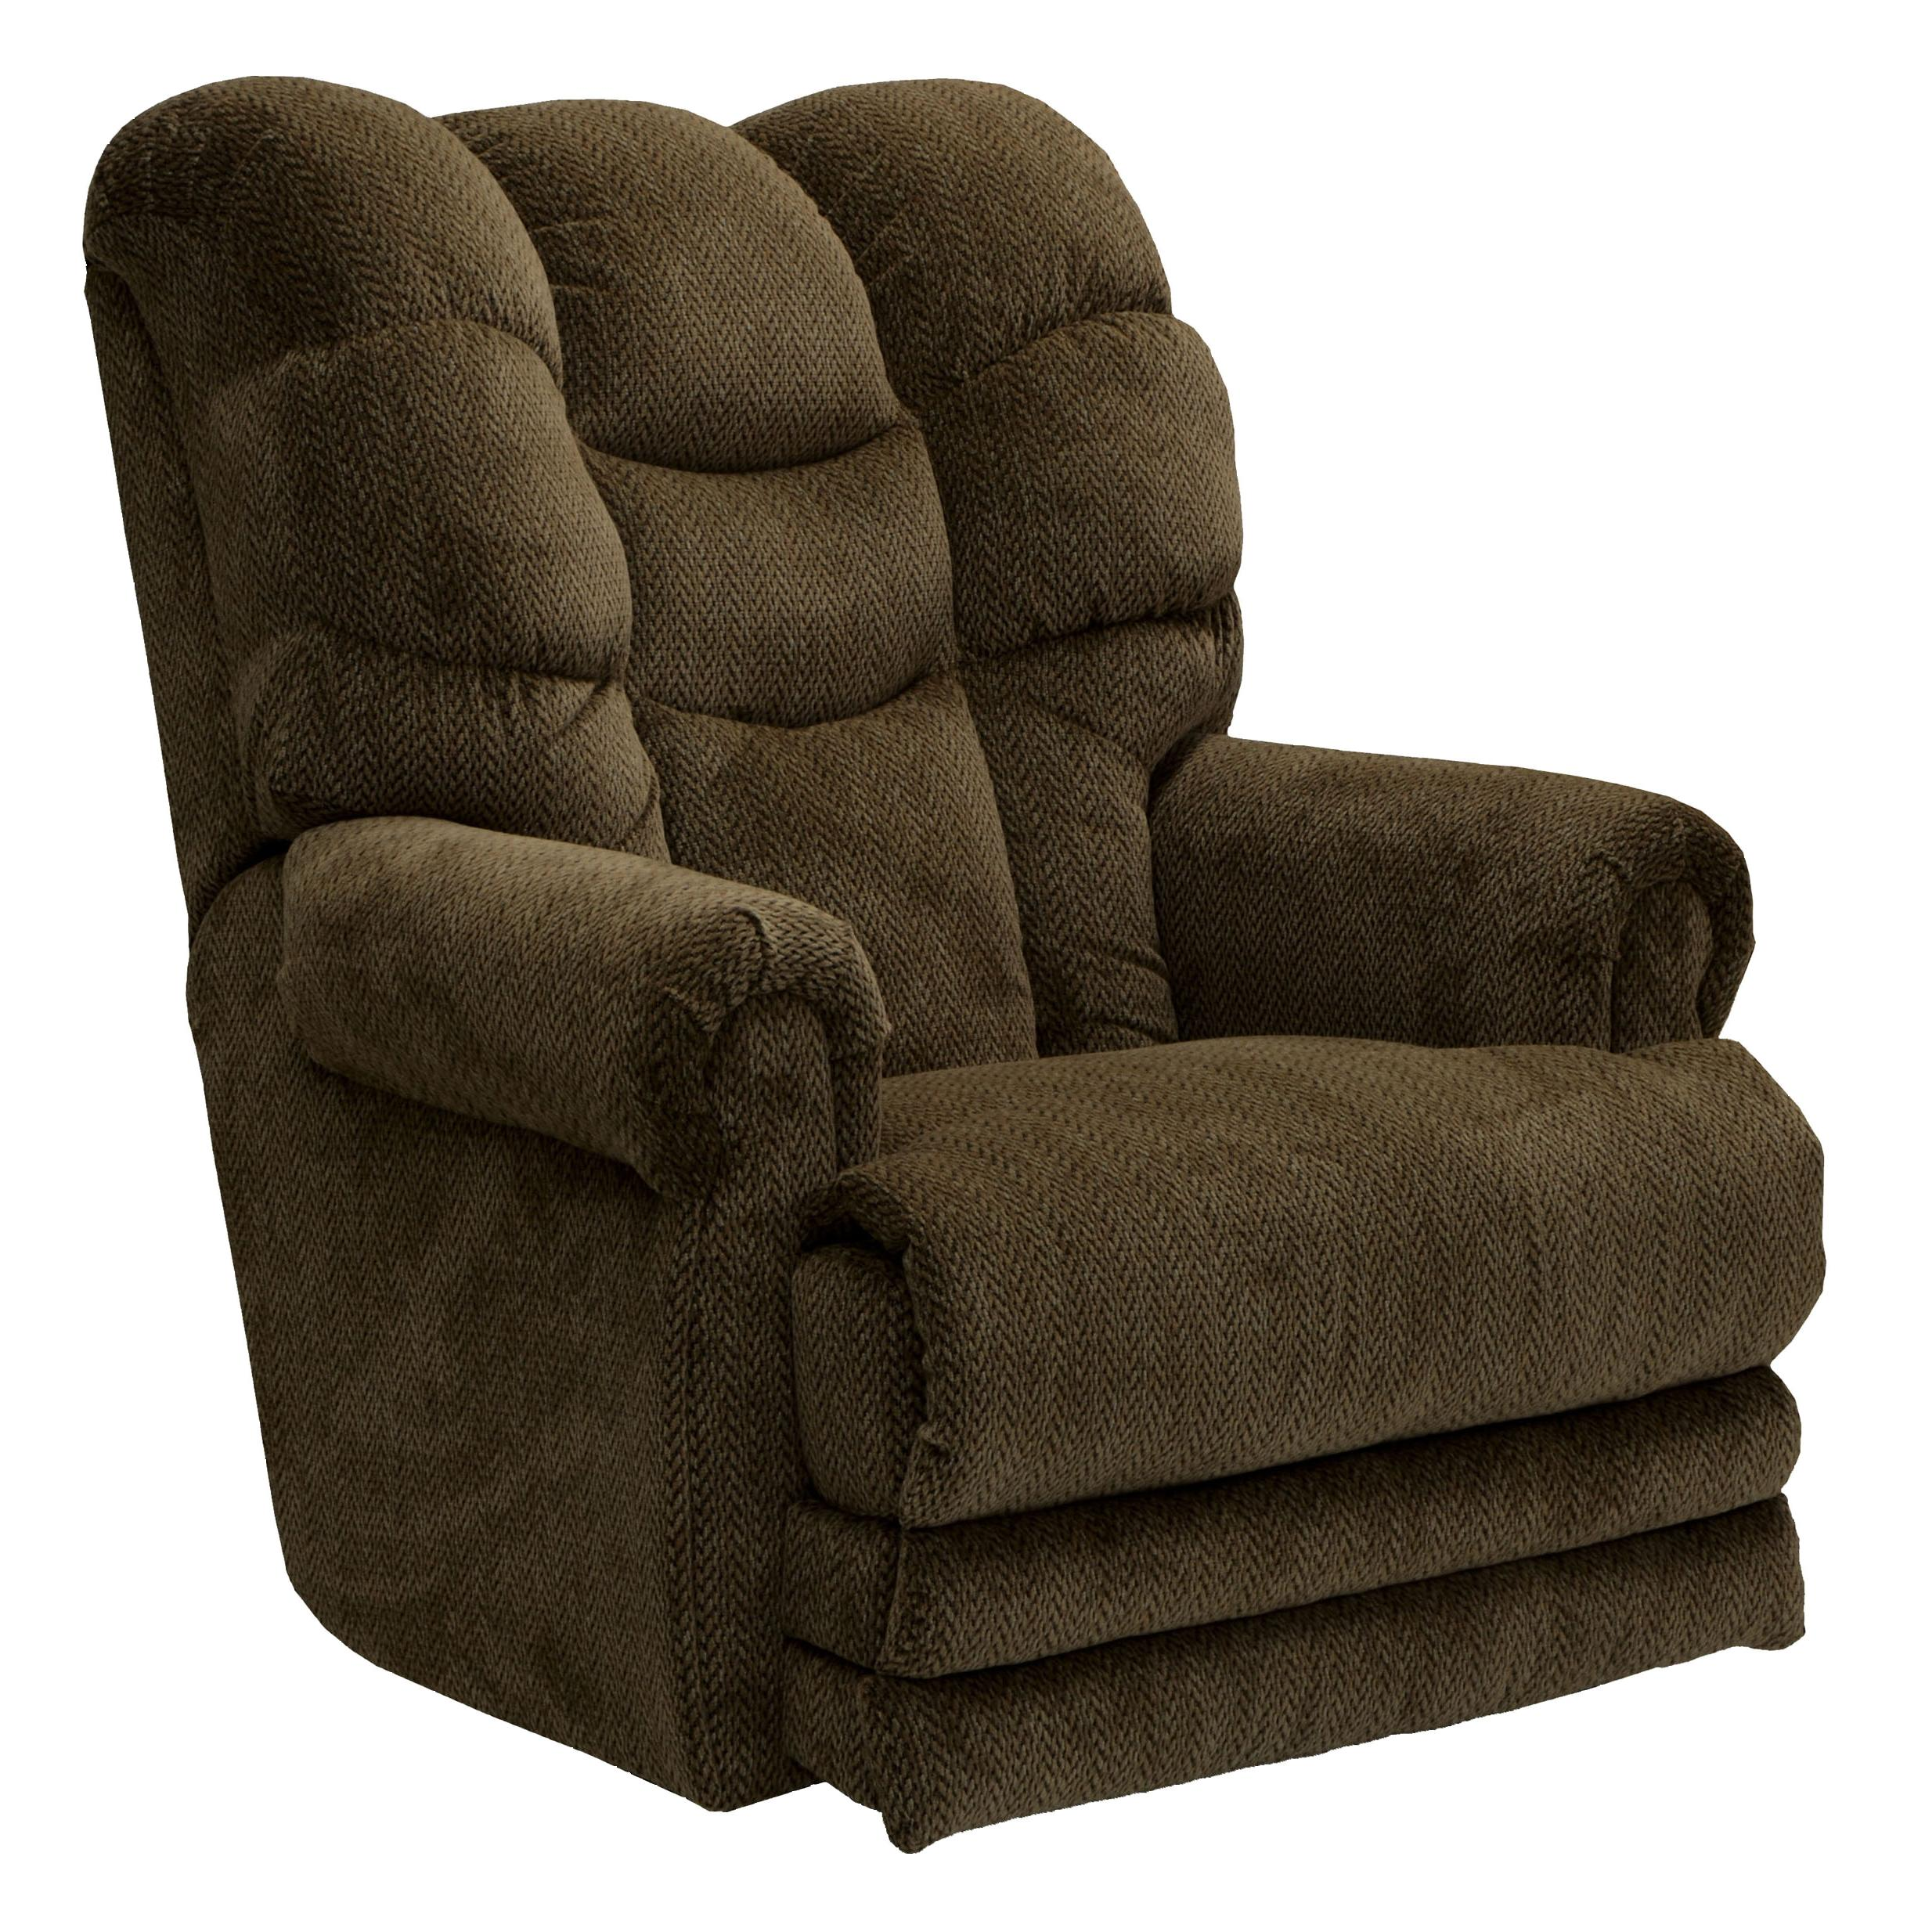 Catnapper big man recliner index of 81 lane furniture for Catnapper cloud nine chaise recliner